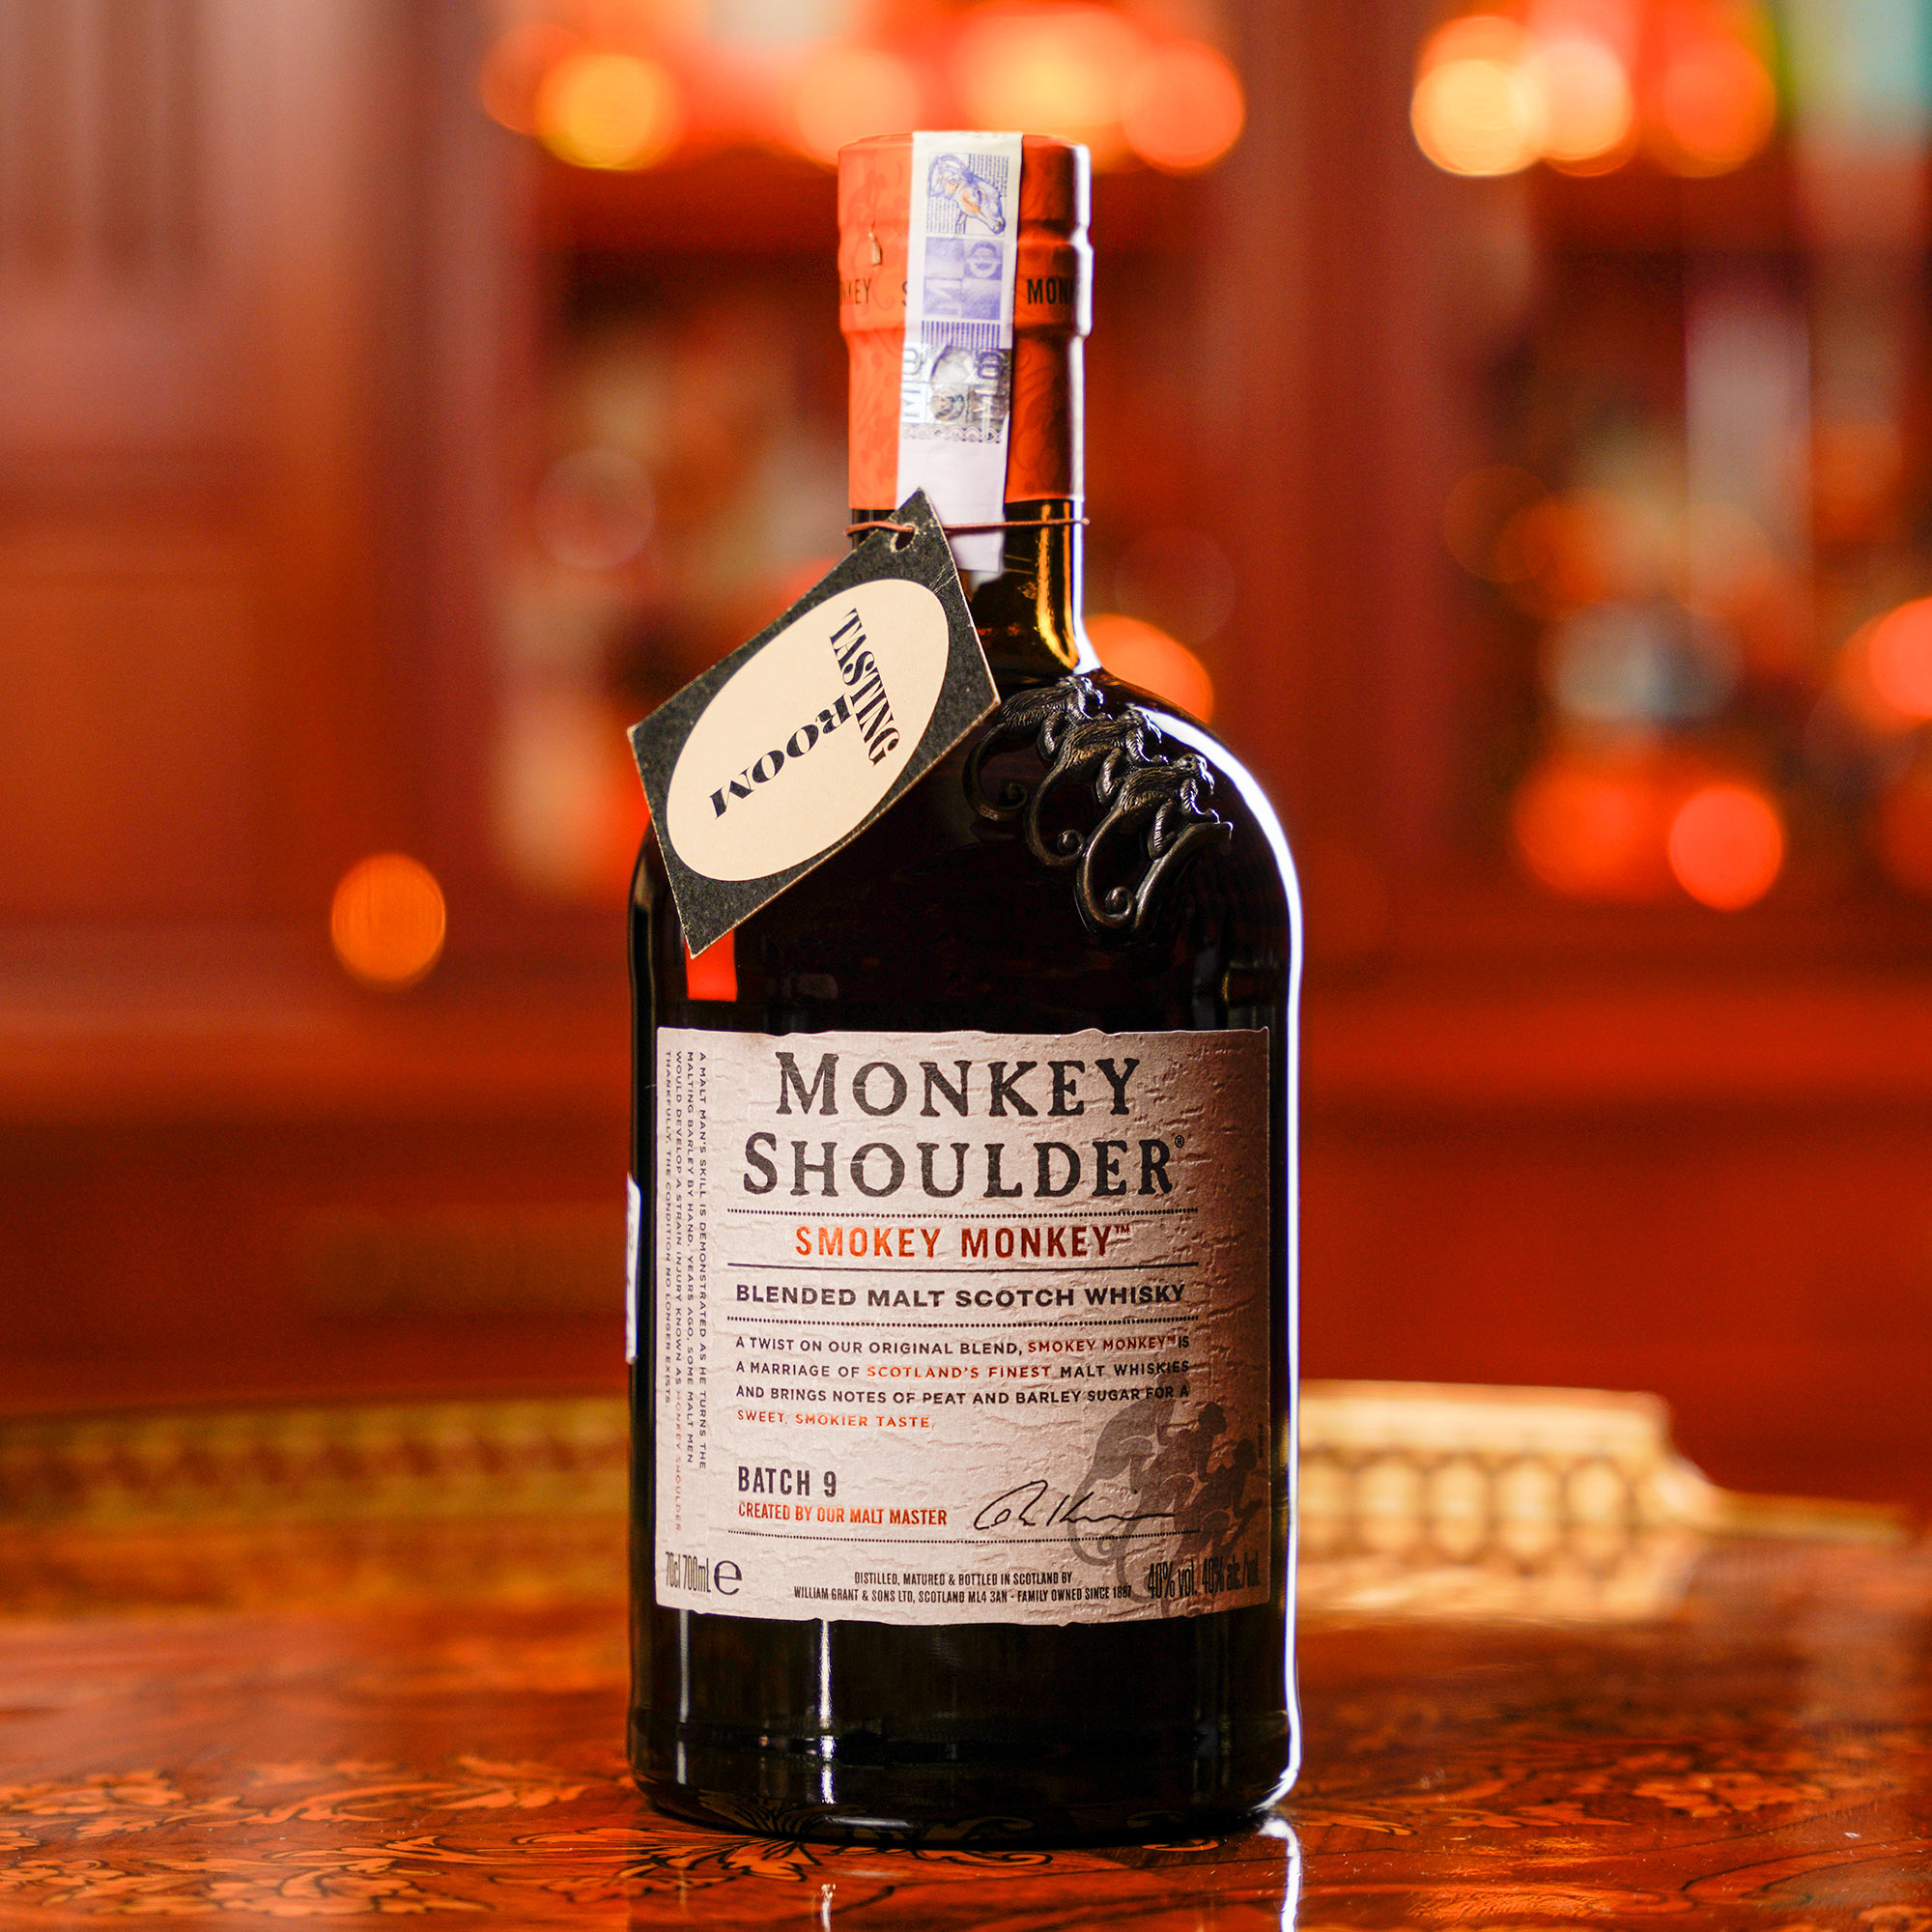 Monkey Shoulder Smokey Monkey /Мънки Шоулдър Смоки Мънки